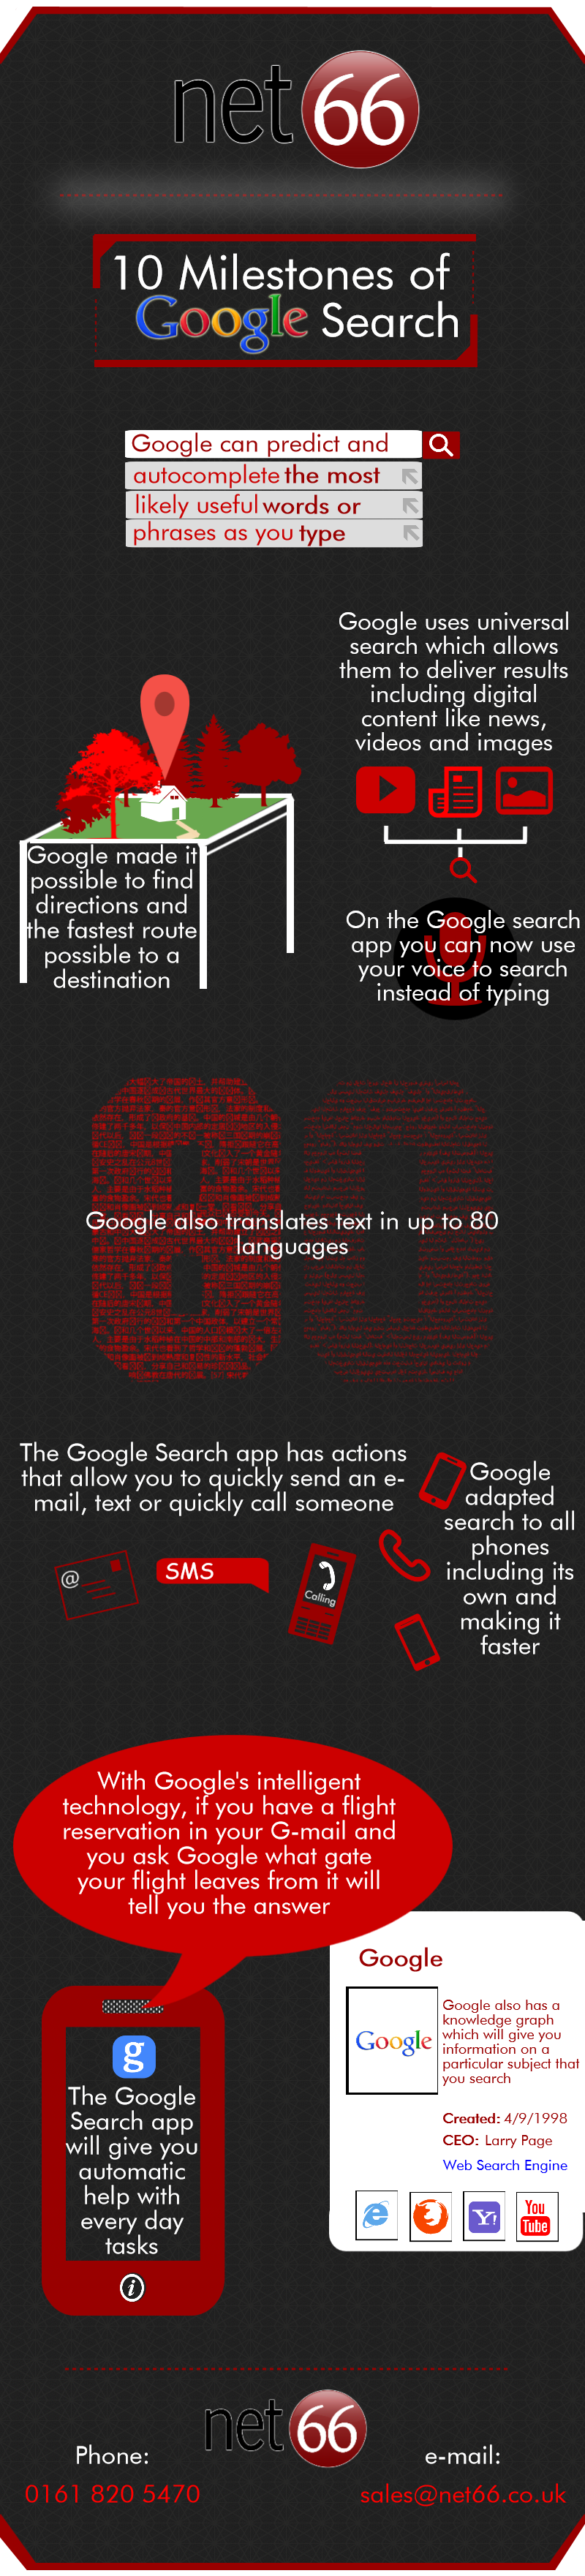 Net66-Google-10-Milestones-Updated